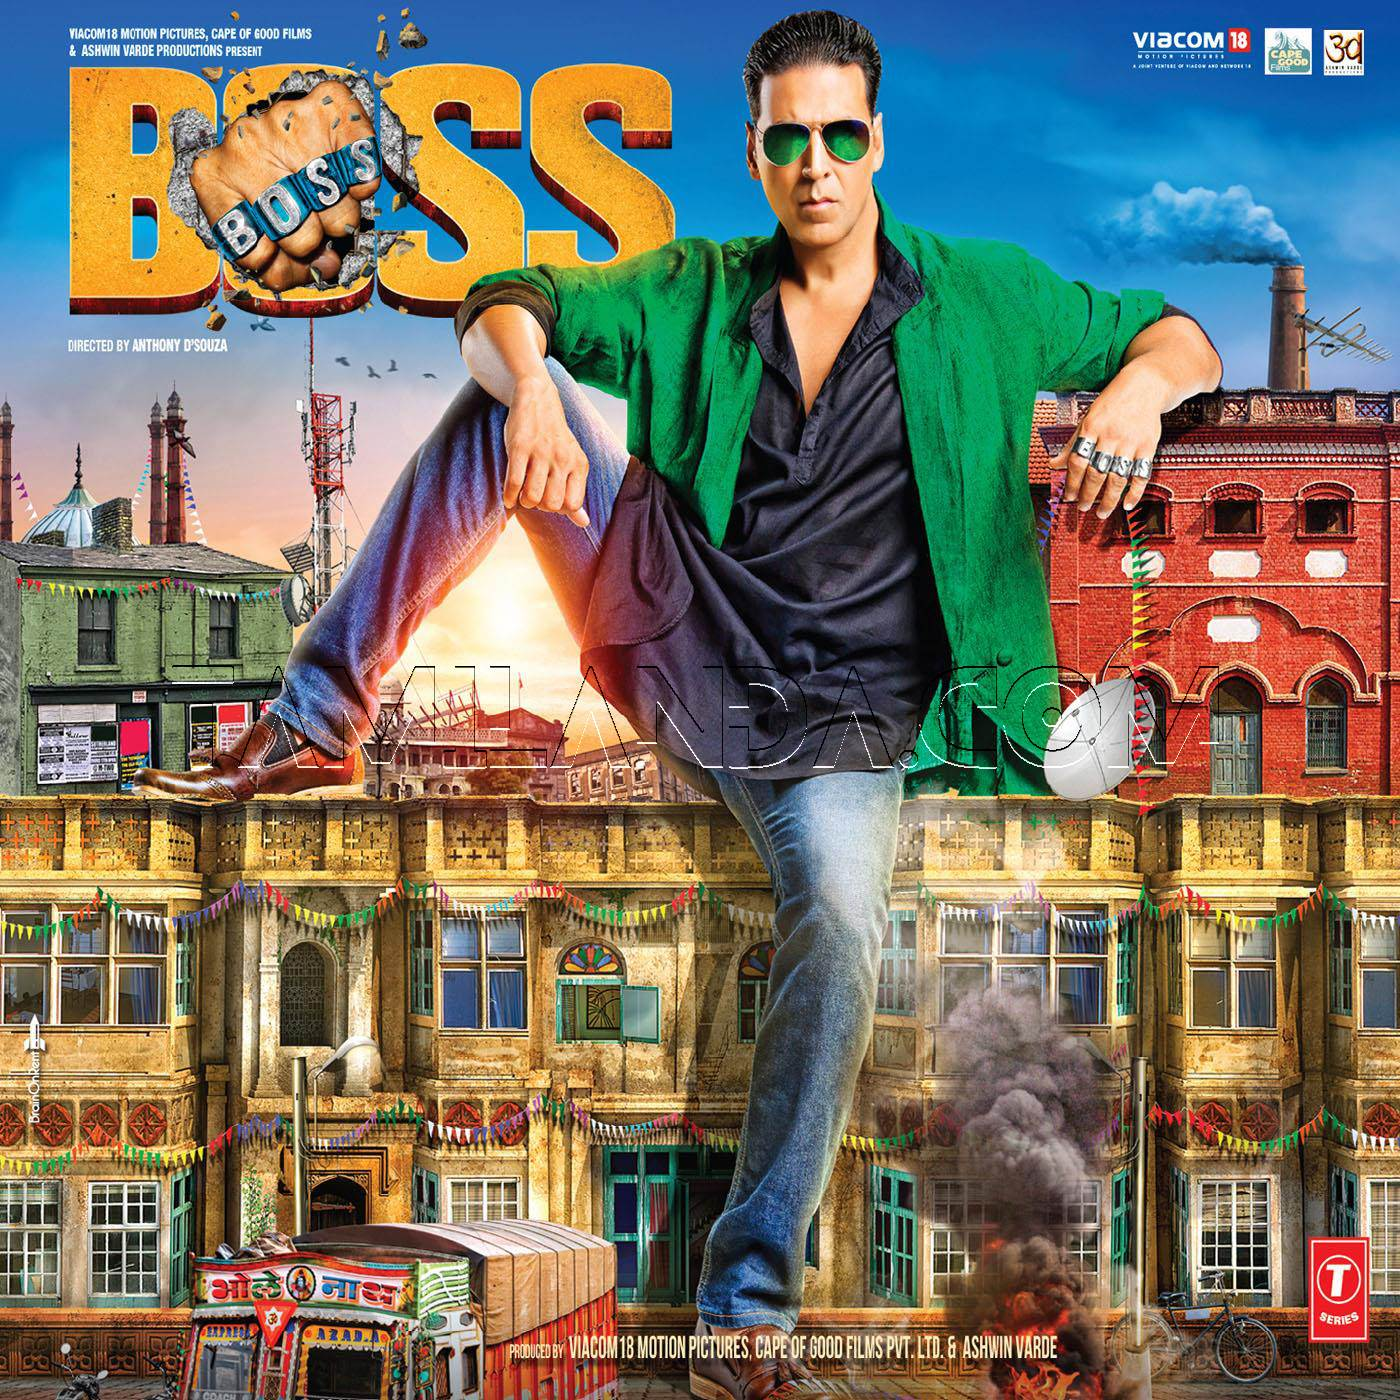 Boss (2013) WAV Songs